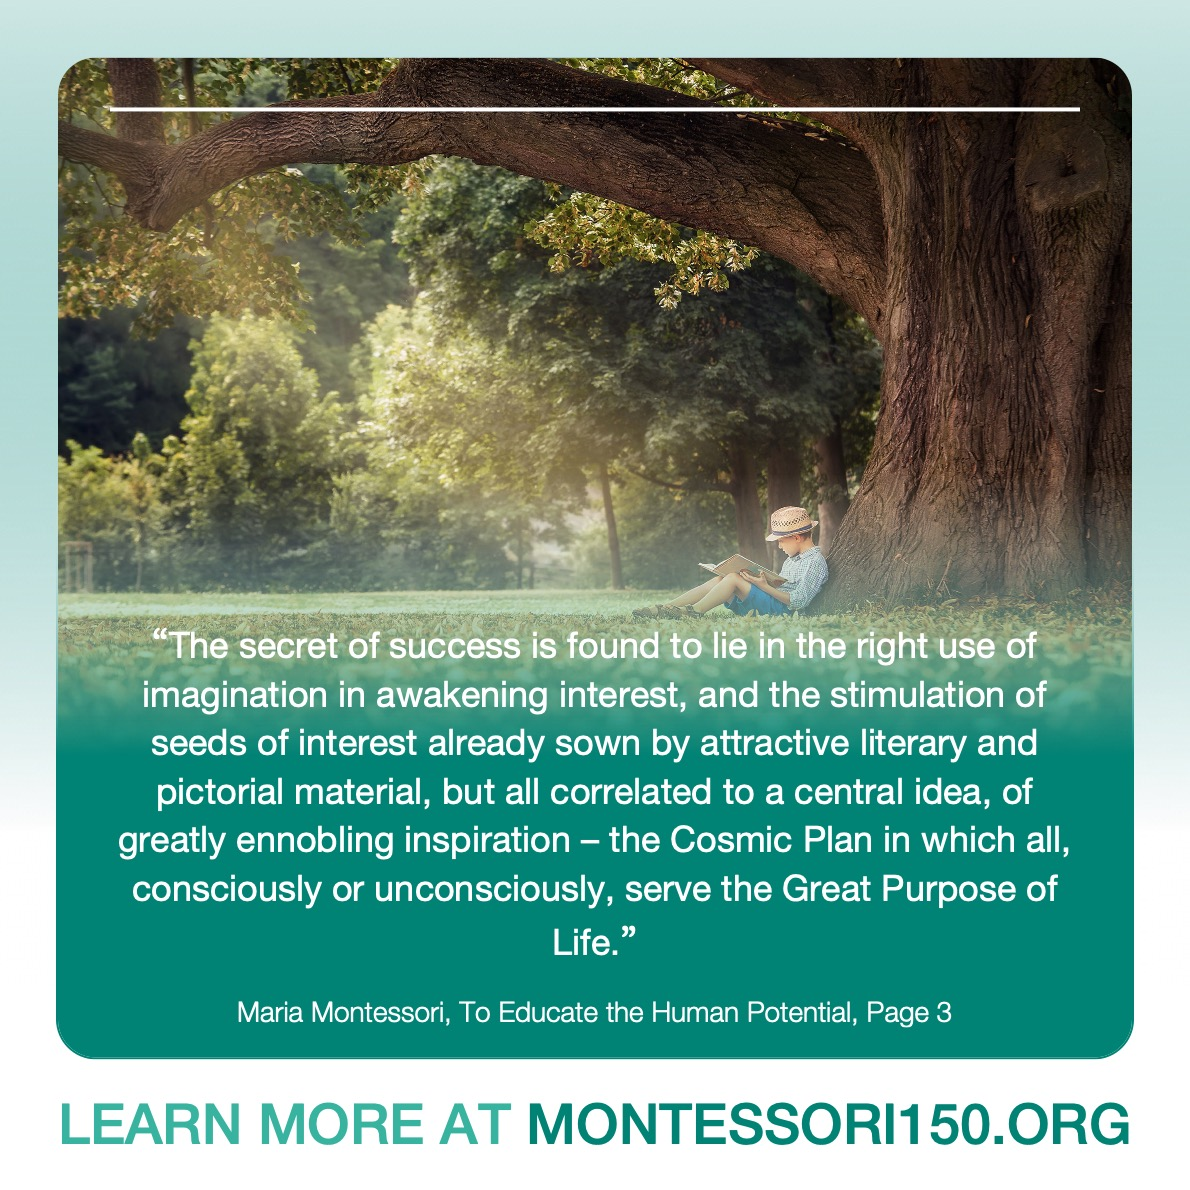 Download Social Media Graphic